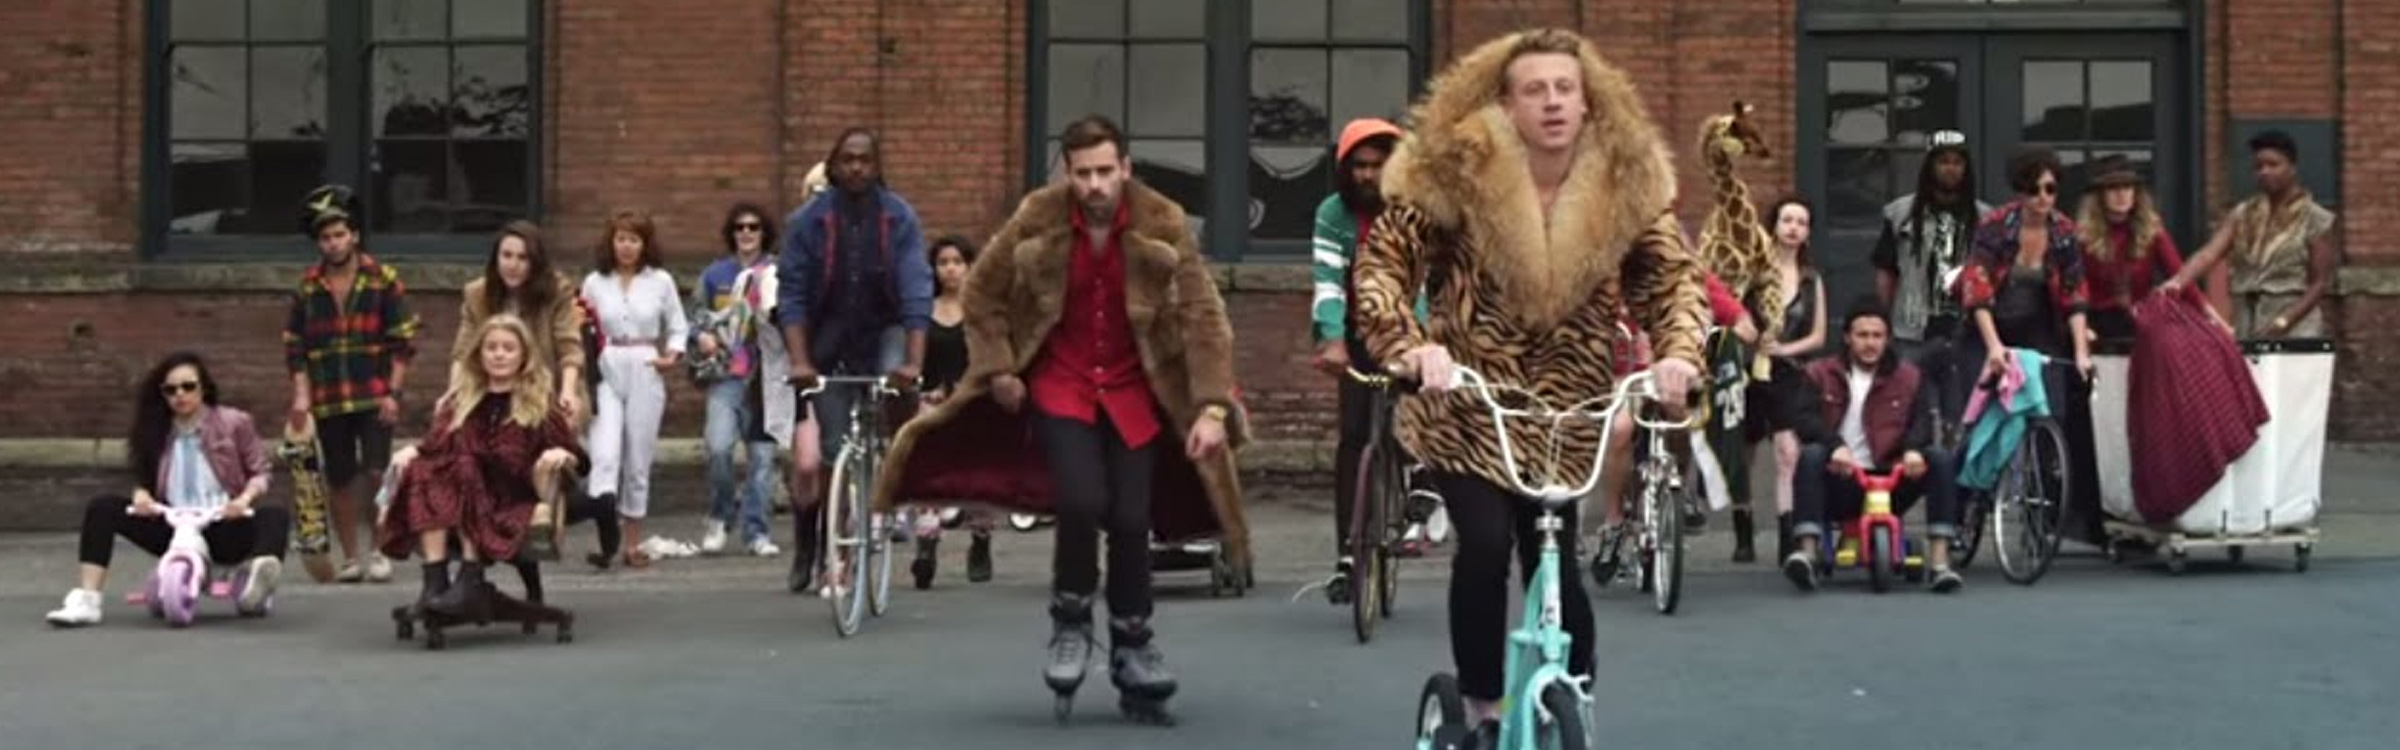 Macklemore youtube header